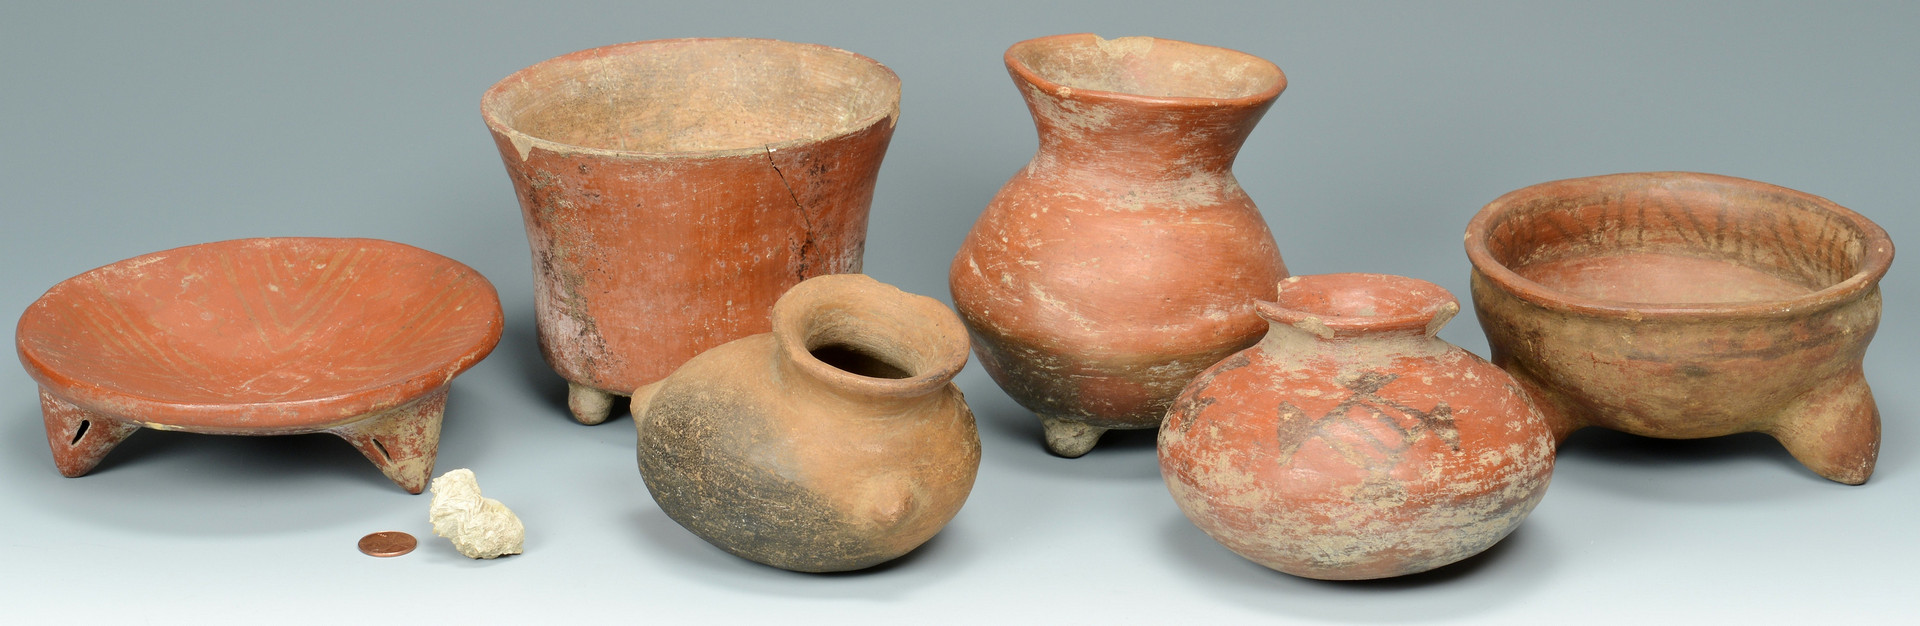 Lot 619: Group of 6 Pre Columbian vessels